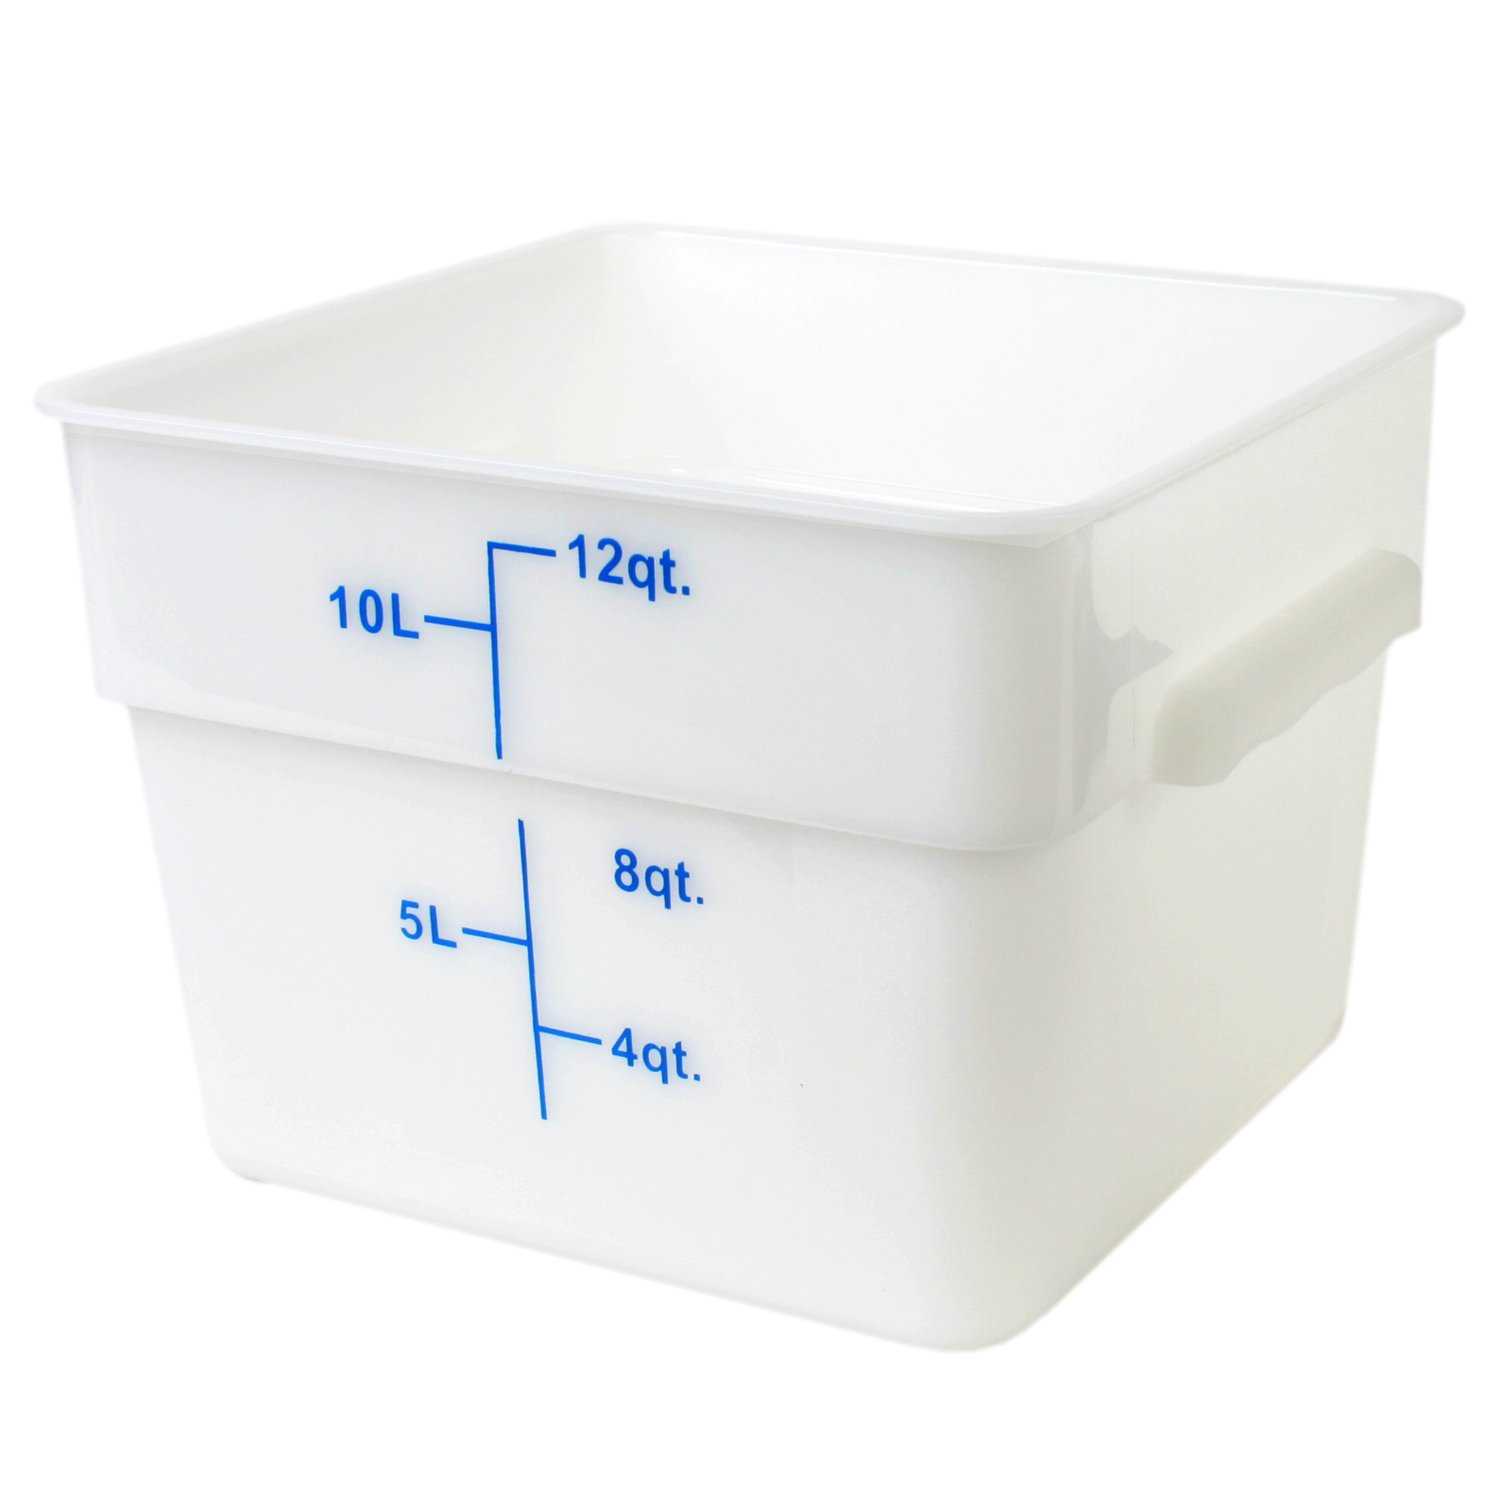 Excellante 12-Quart Polypropylene Square Food Storage Containers, White PLSFT012PP